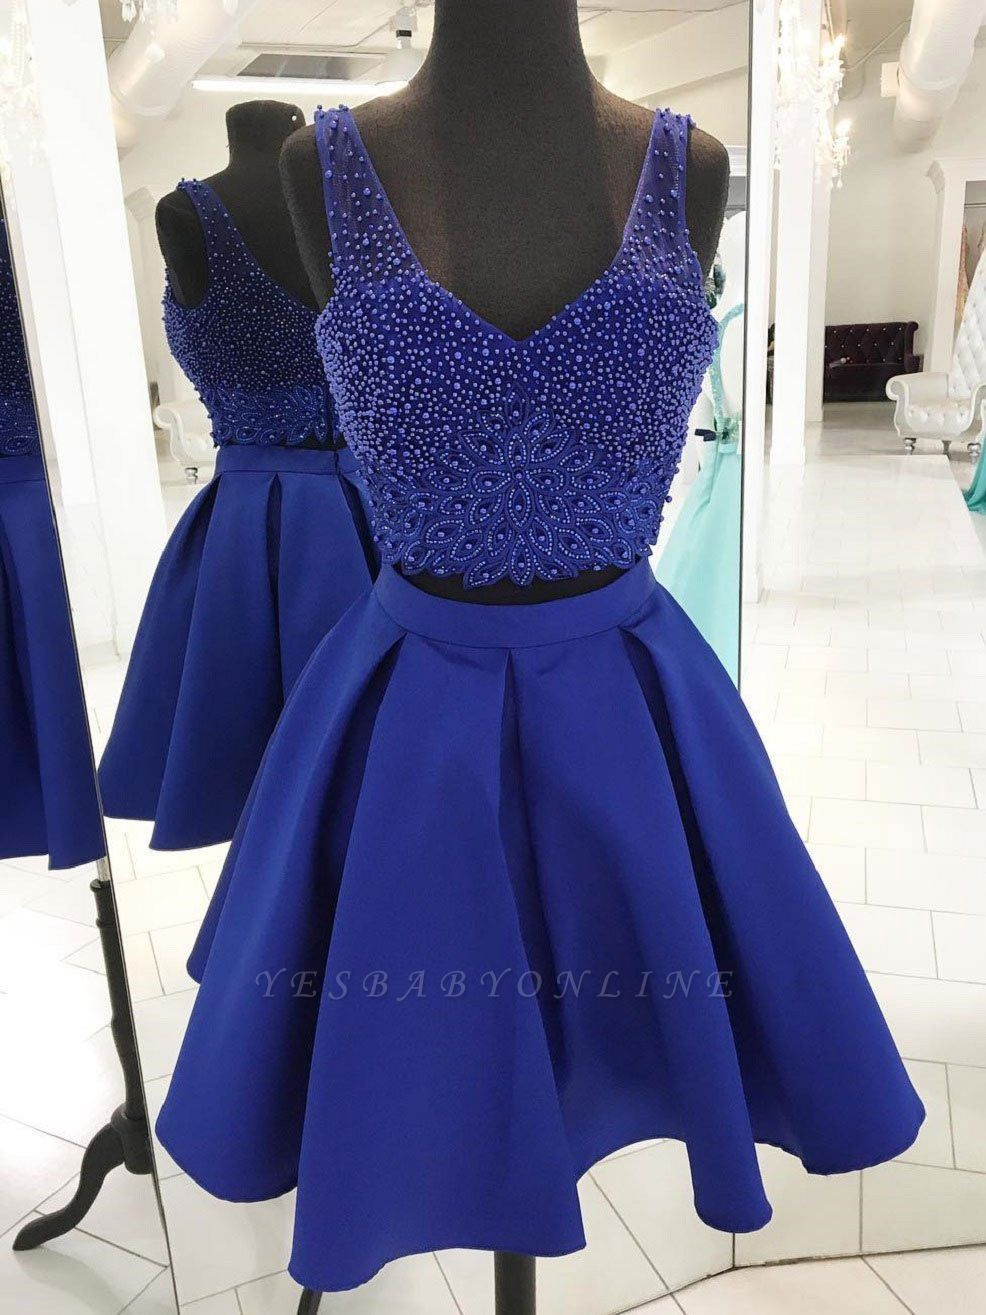 Two-Pieces Straps Beading Sleeveless Homecoming Dress